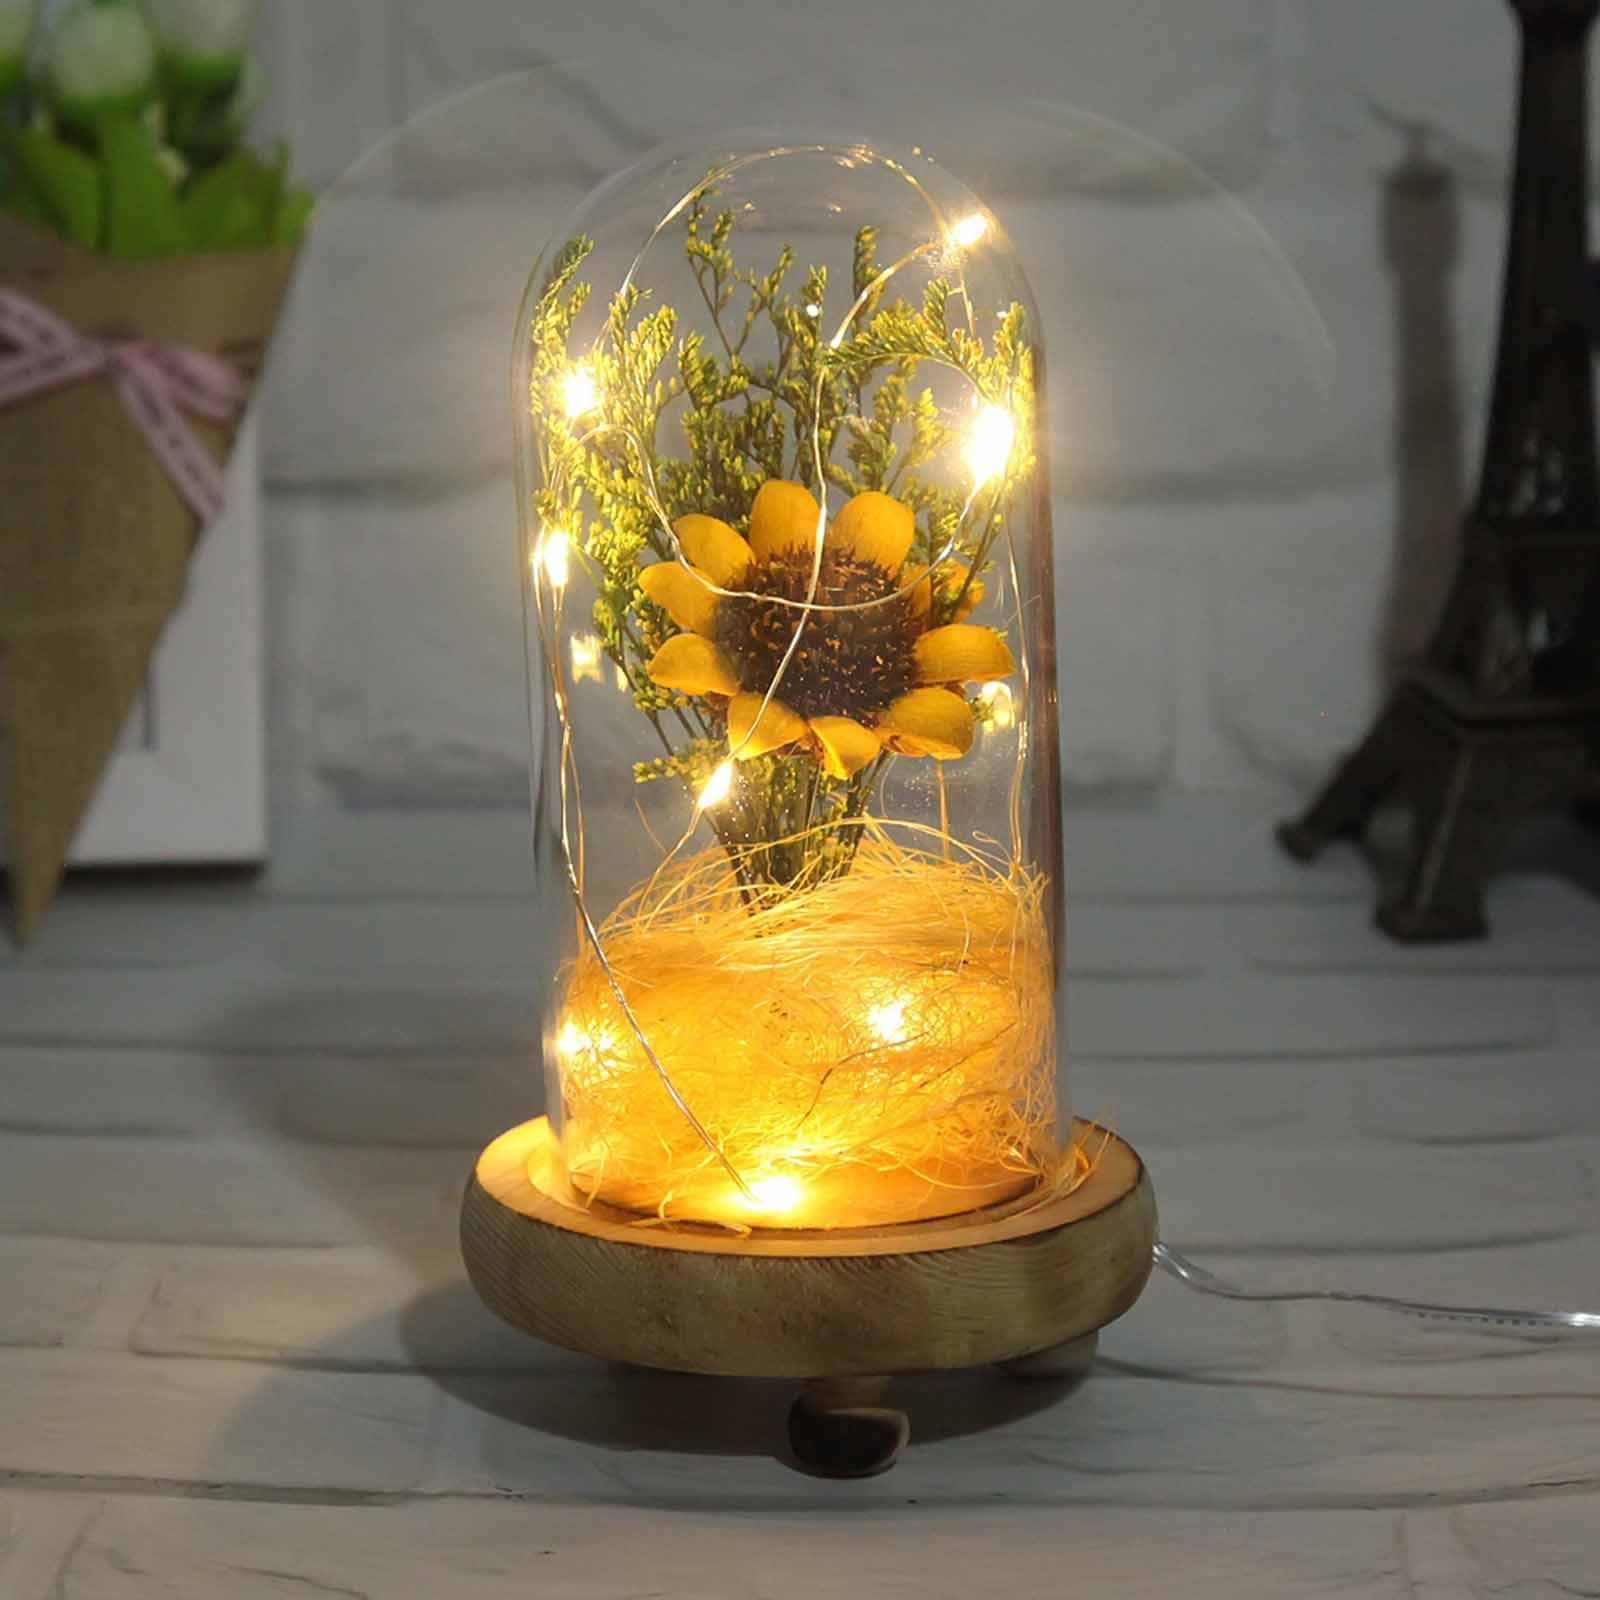 LED Night Lamp Ornaments Mother's Day Gifts Sun Flower Crafts DIY Lovers Grass Decoration Lamp Valentine's Day Party Home Decor the lovers day gifts